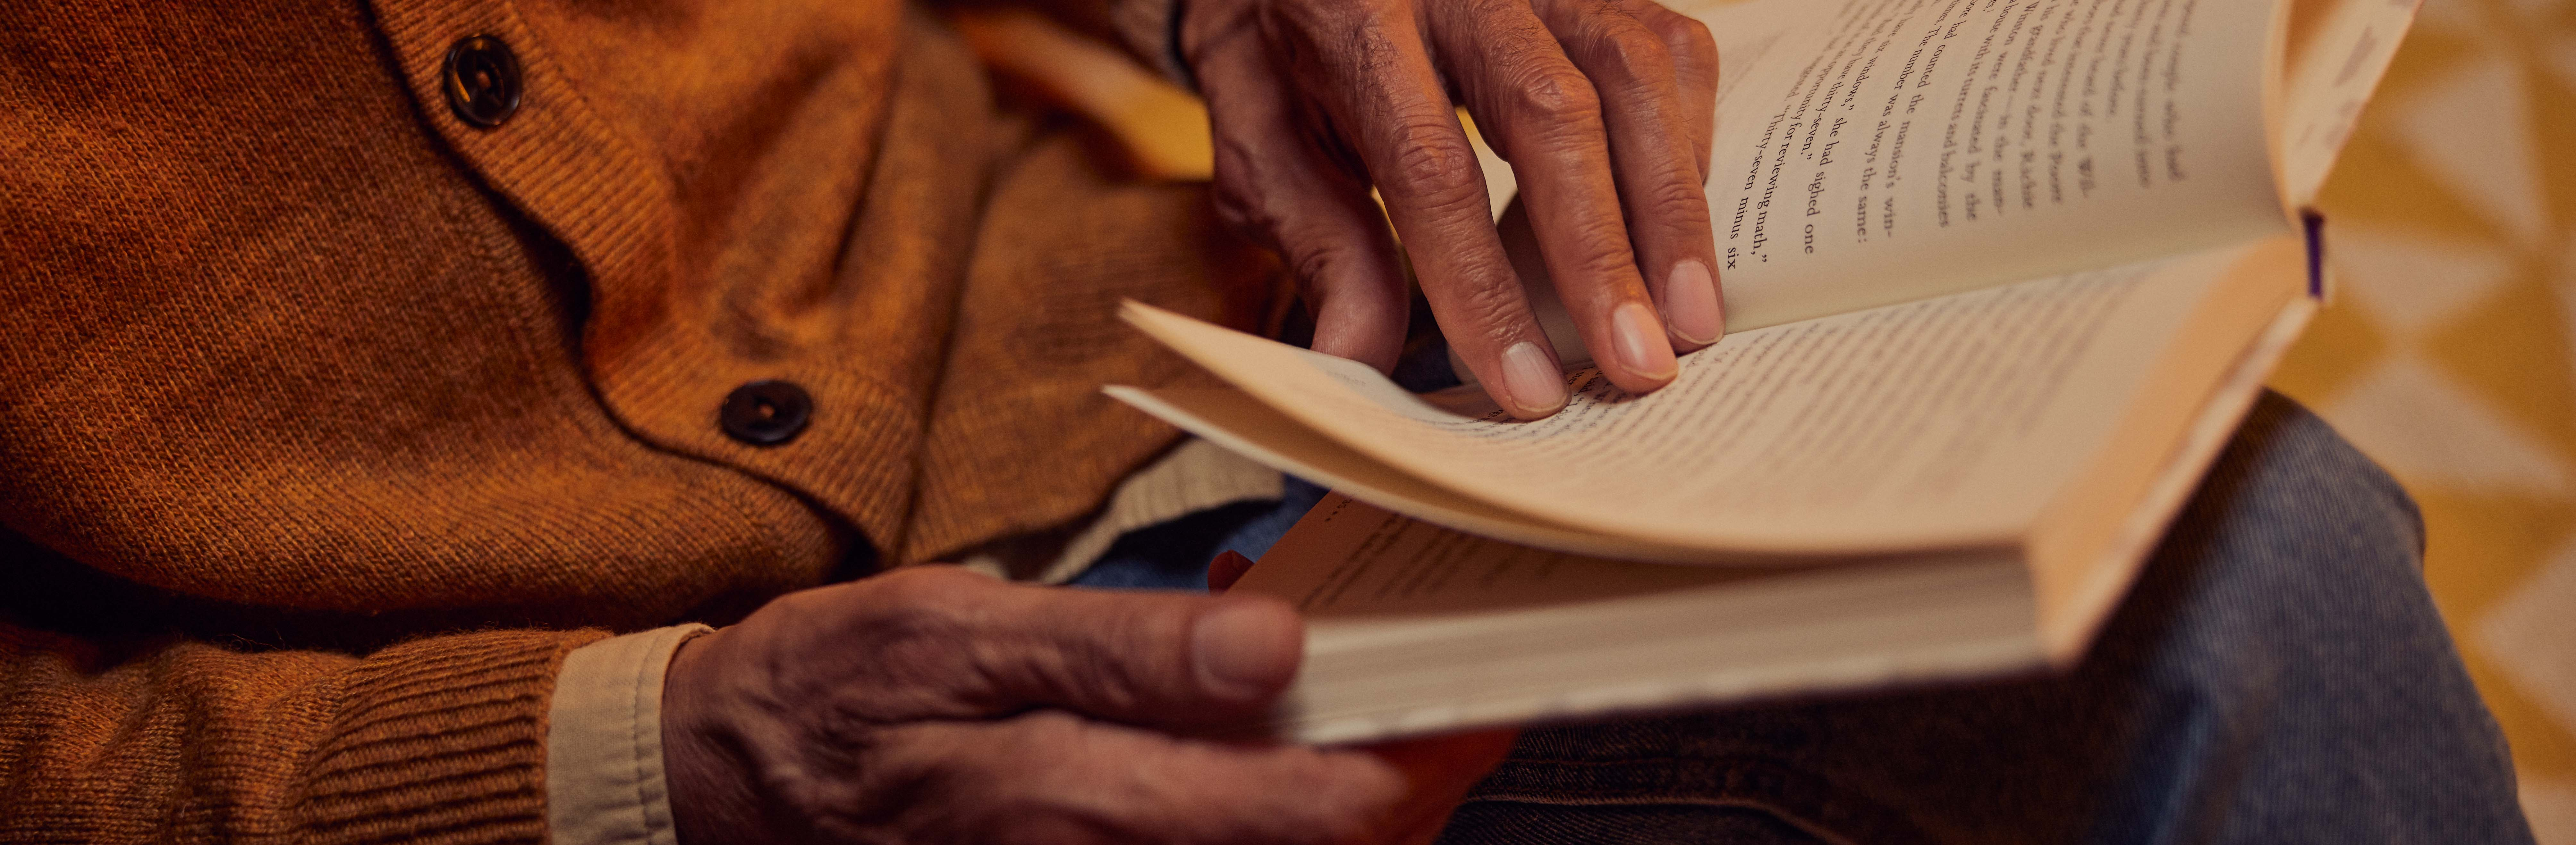 A person turning the page of a book they're reading